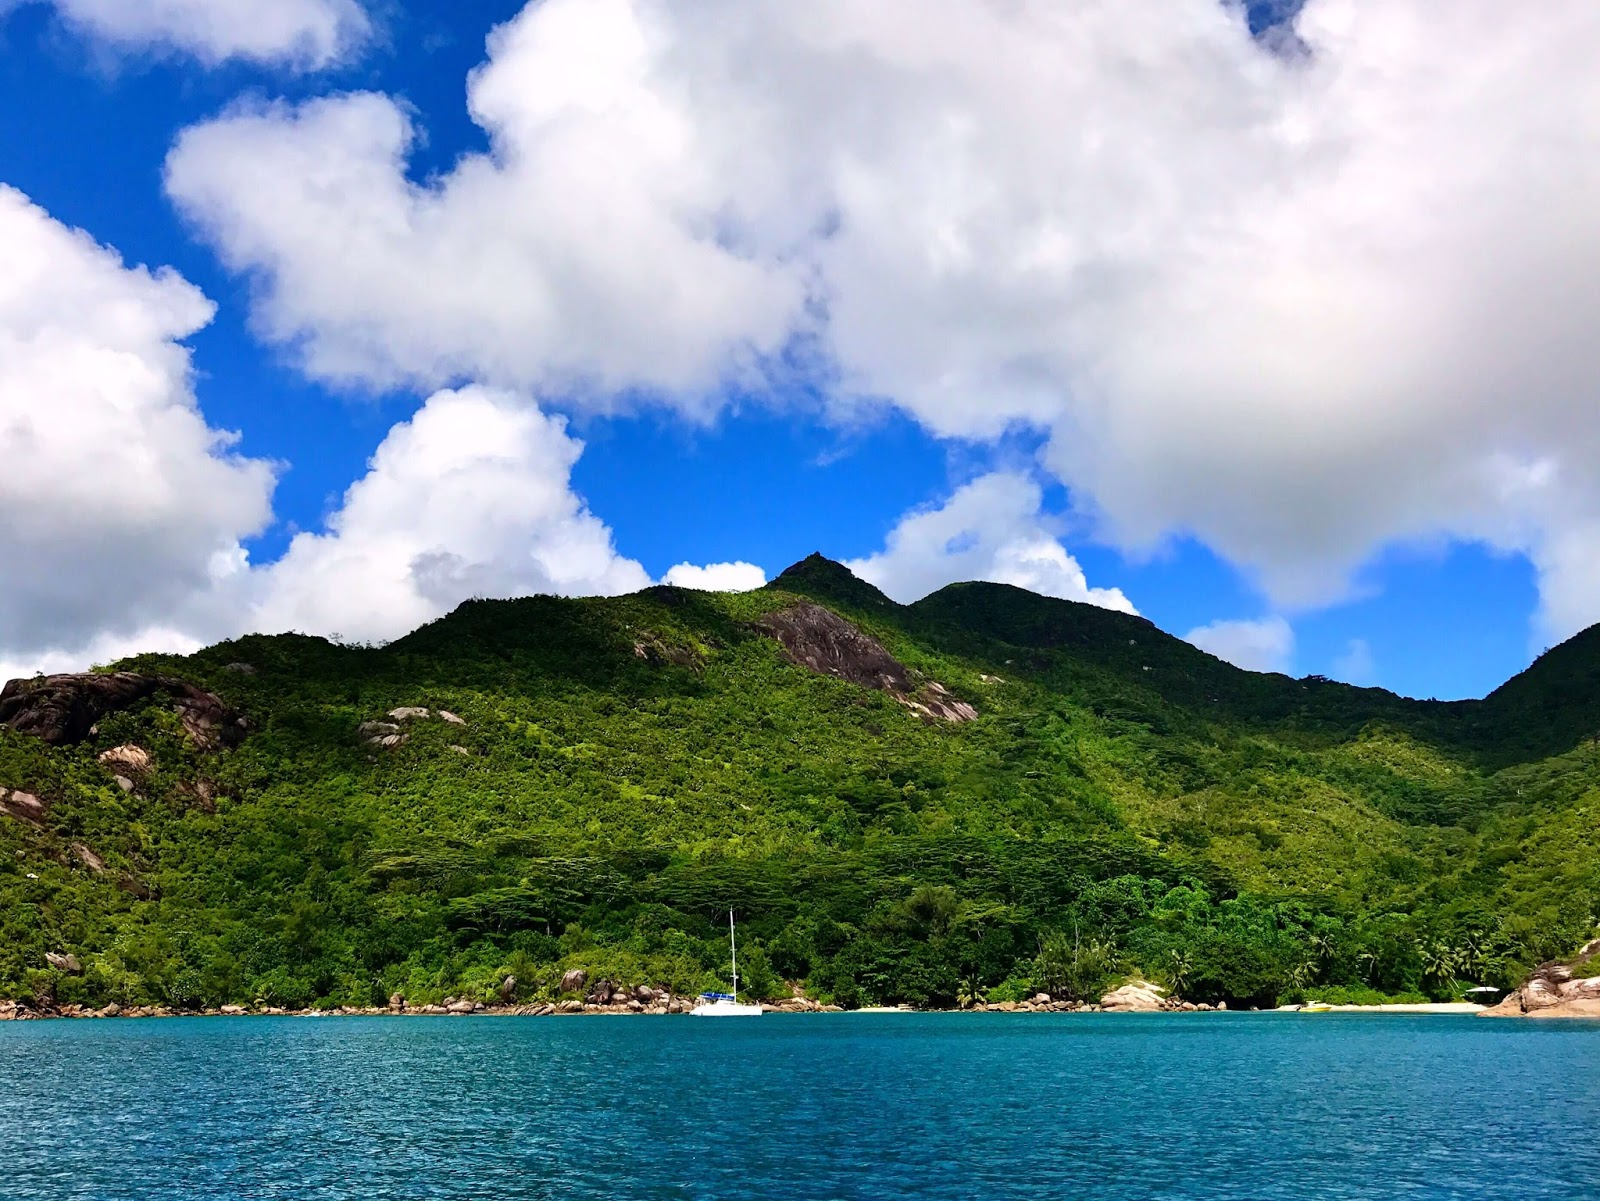 A Great View of Dense Clouds, Mountain & Water from a Boat in Seychelles